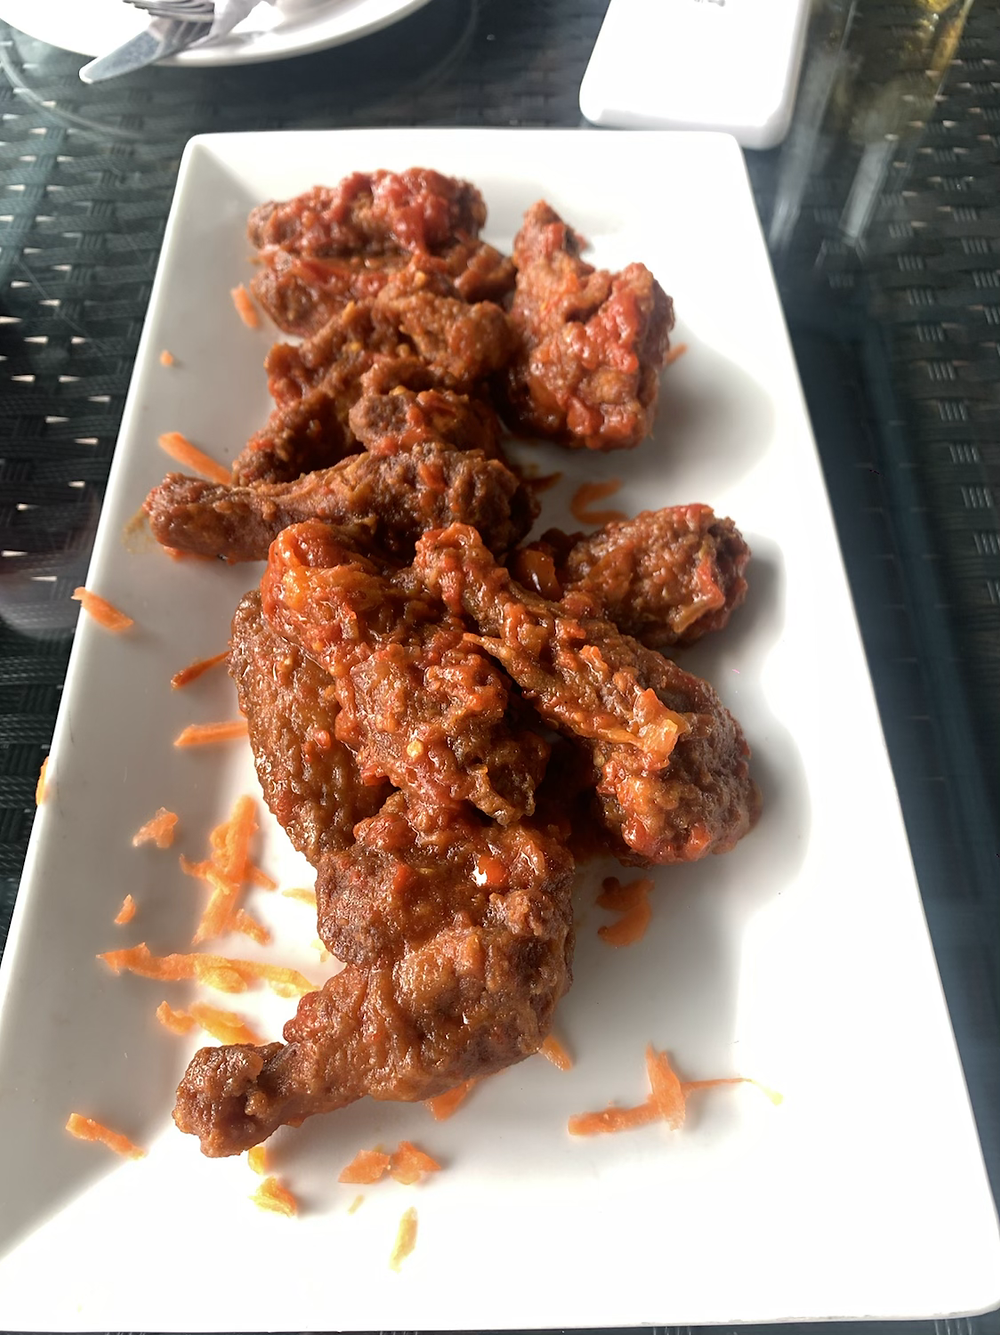 Peppered wings from Boys Company